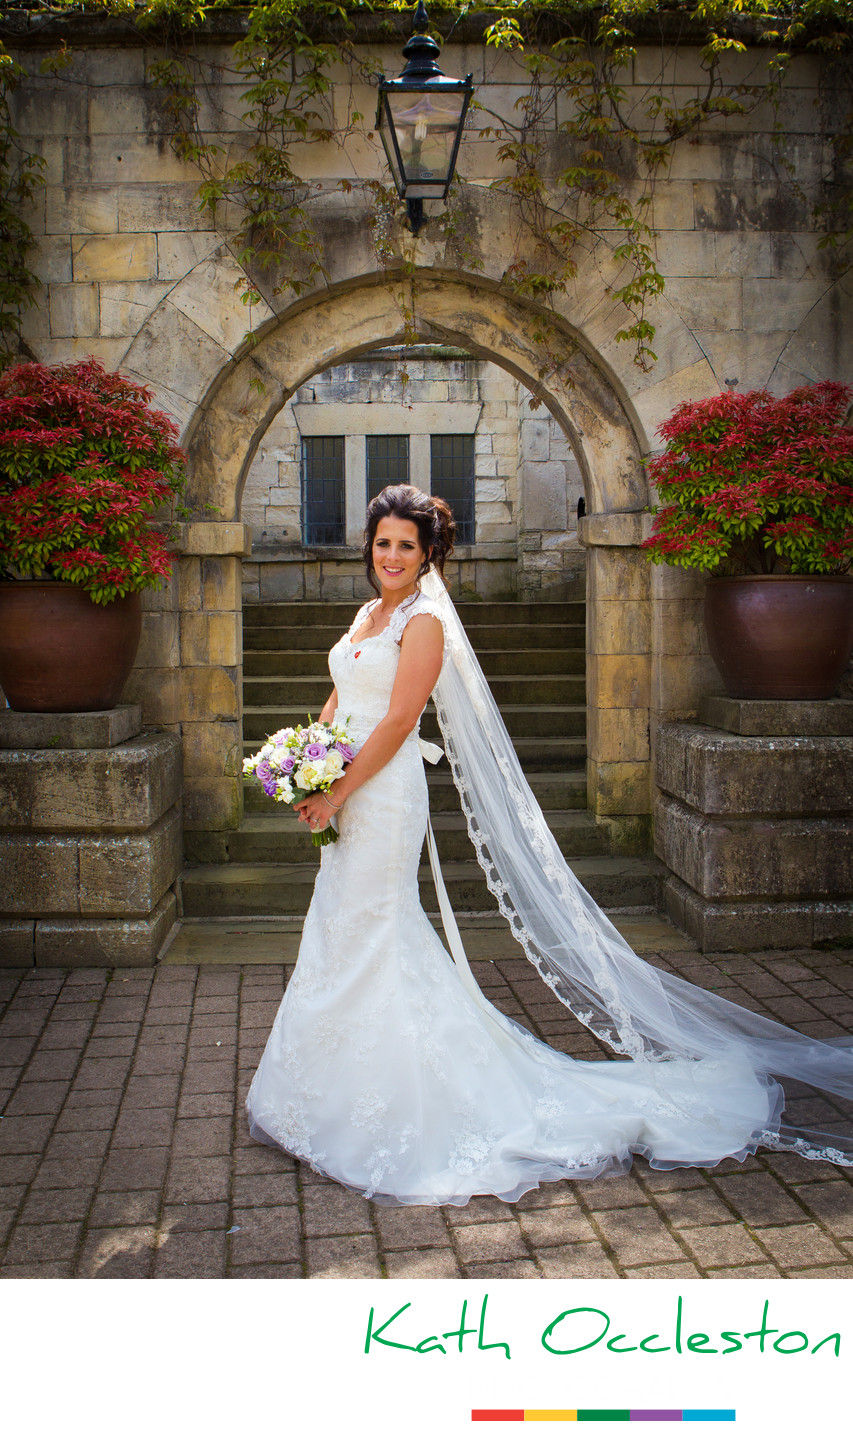 Beautiful Bridal photography at Hazlewood Castle